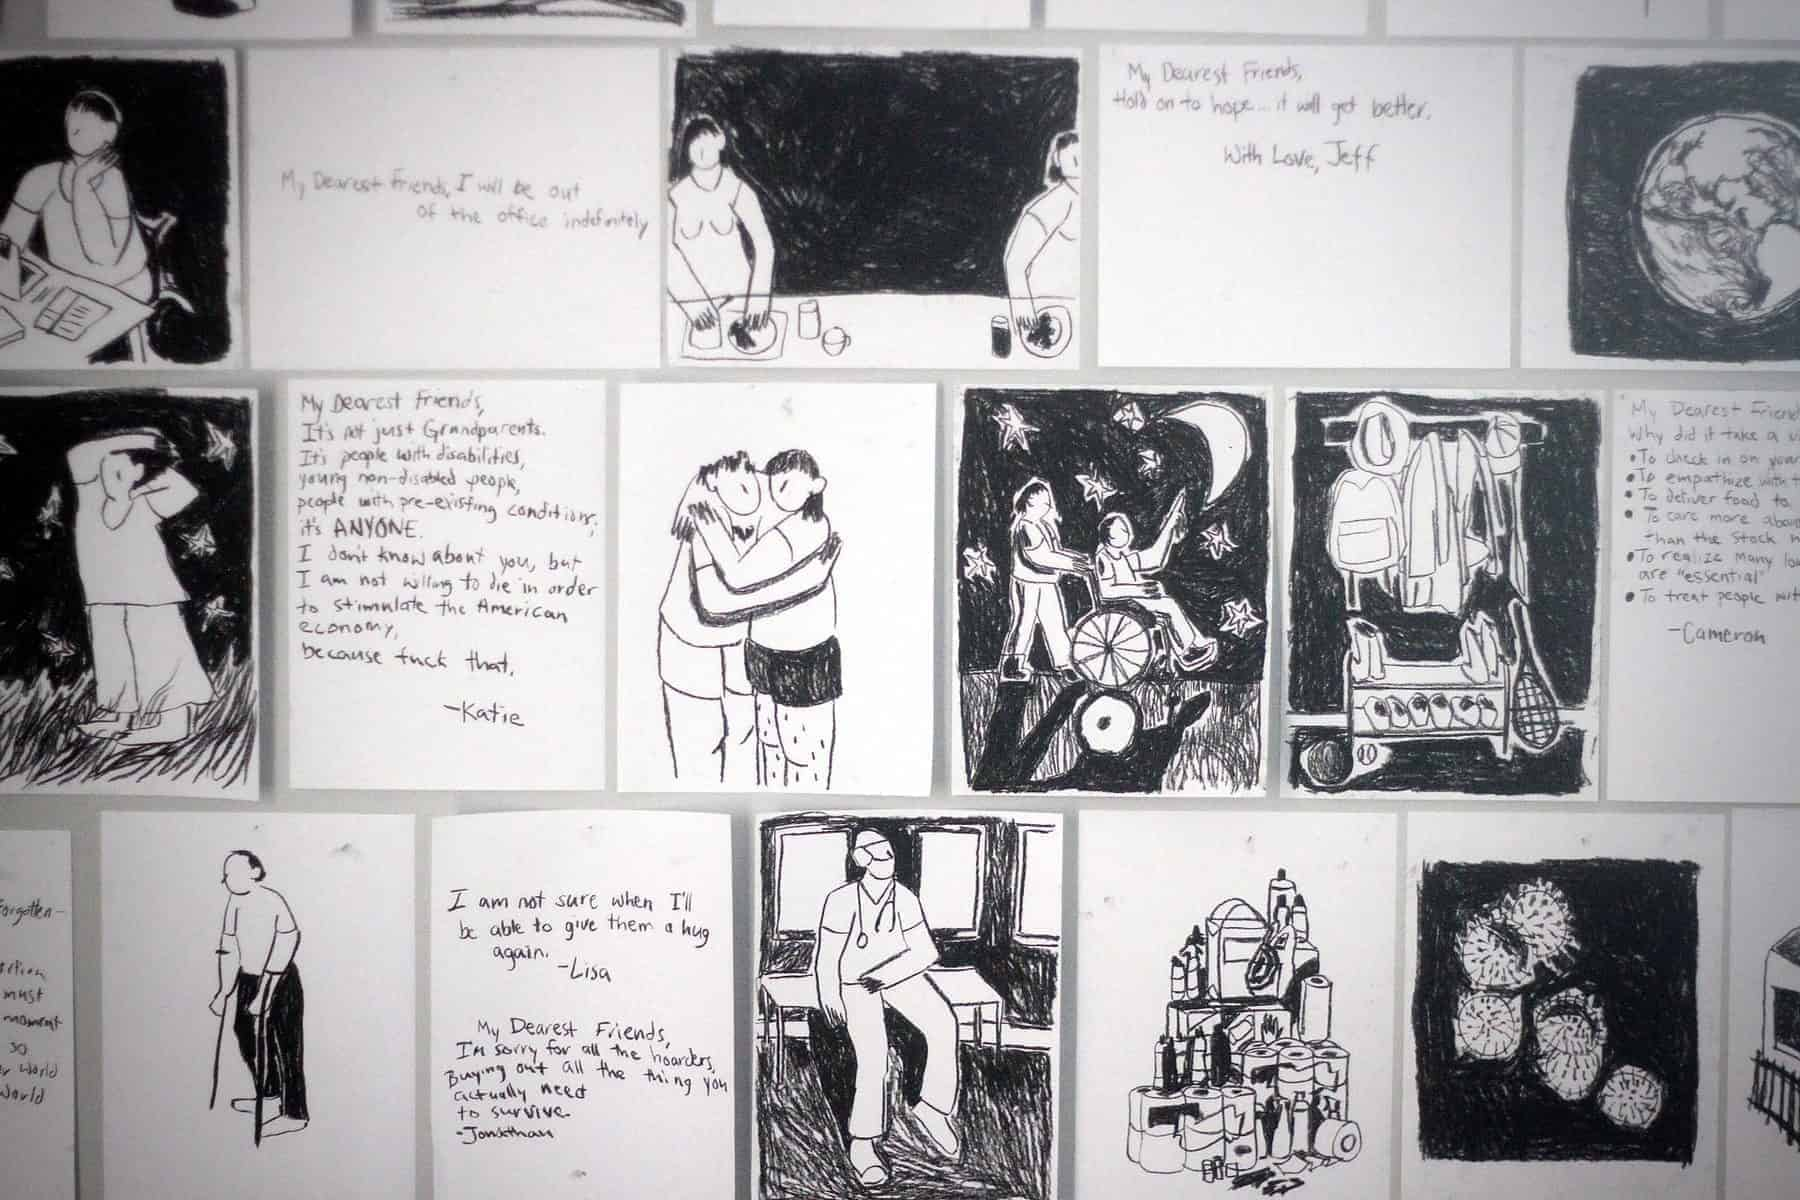 """A white wall is completely covered in 8"""" x 10"""" abstract charcoal drawings. Some of the imagery includes a microscopic view of COVID-19, a pile of hoarded toilet paper, a doctor, a person using forearm crutches, two people hugging, along with various handwritten notes."""